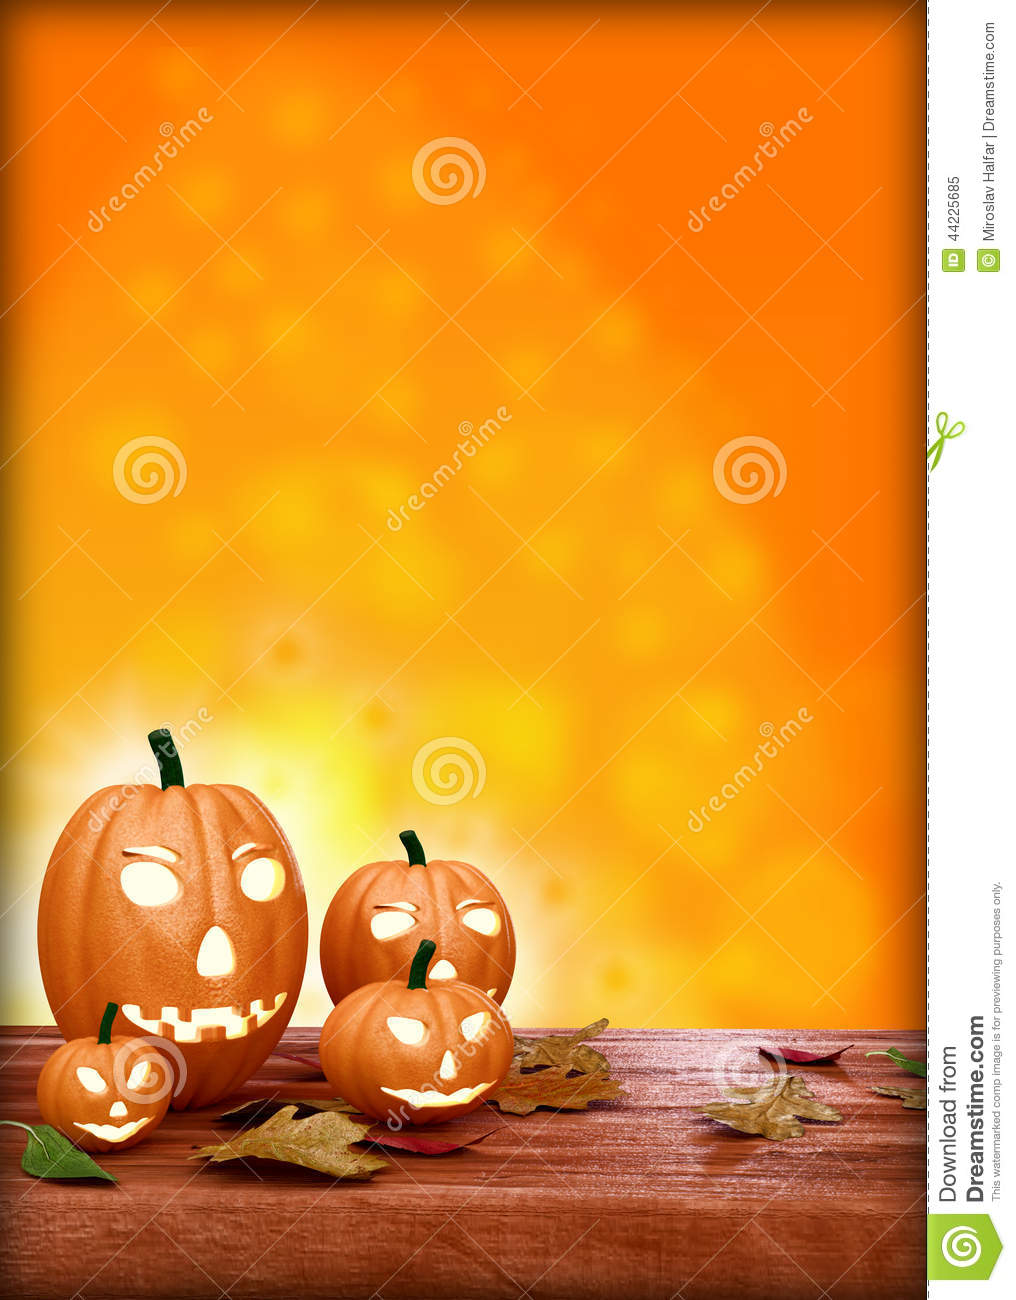 halloween flyer design template  with pumpkin stock credit card clipart black and white credit card clip art images